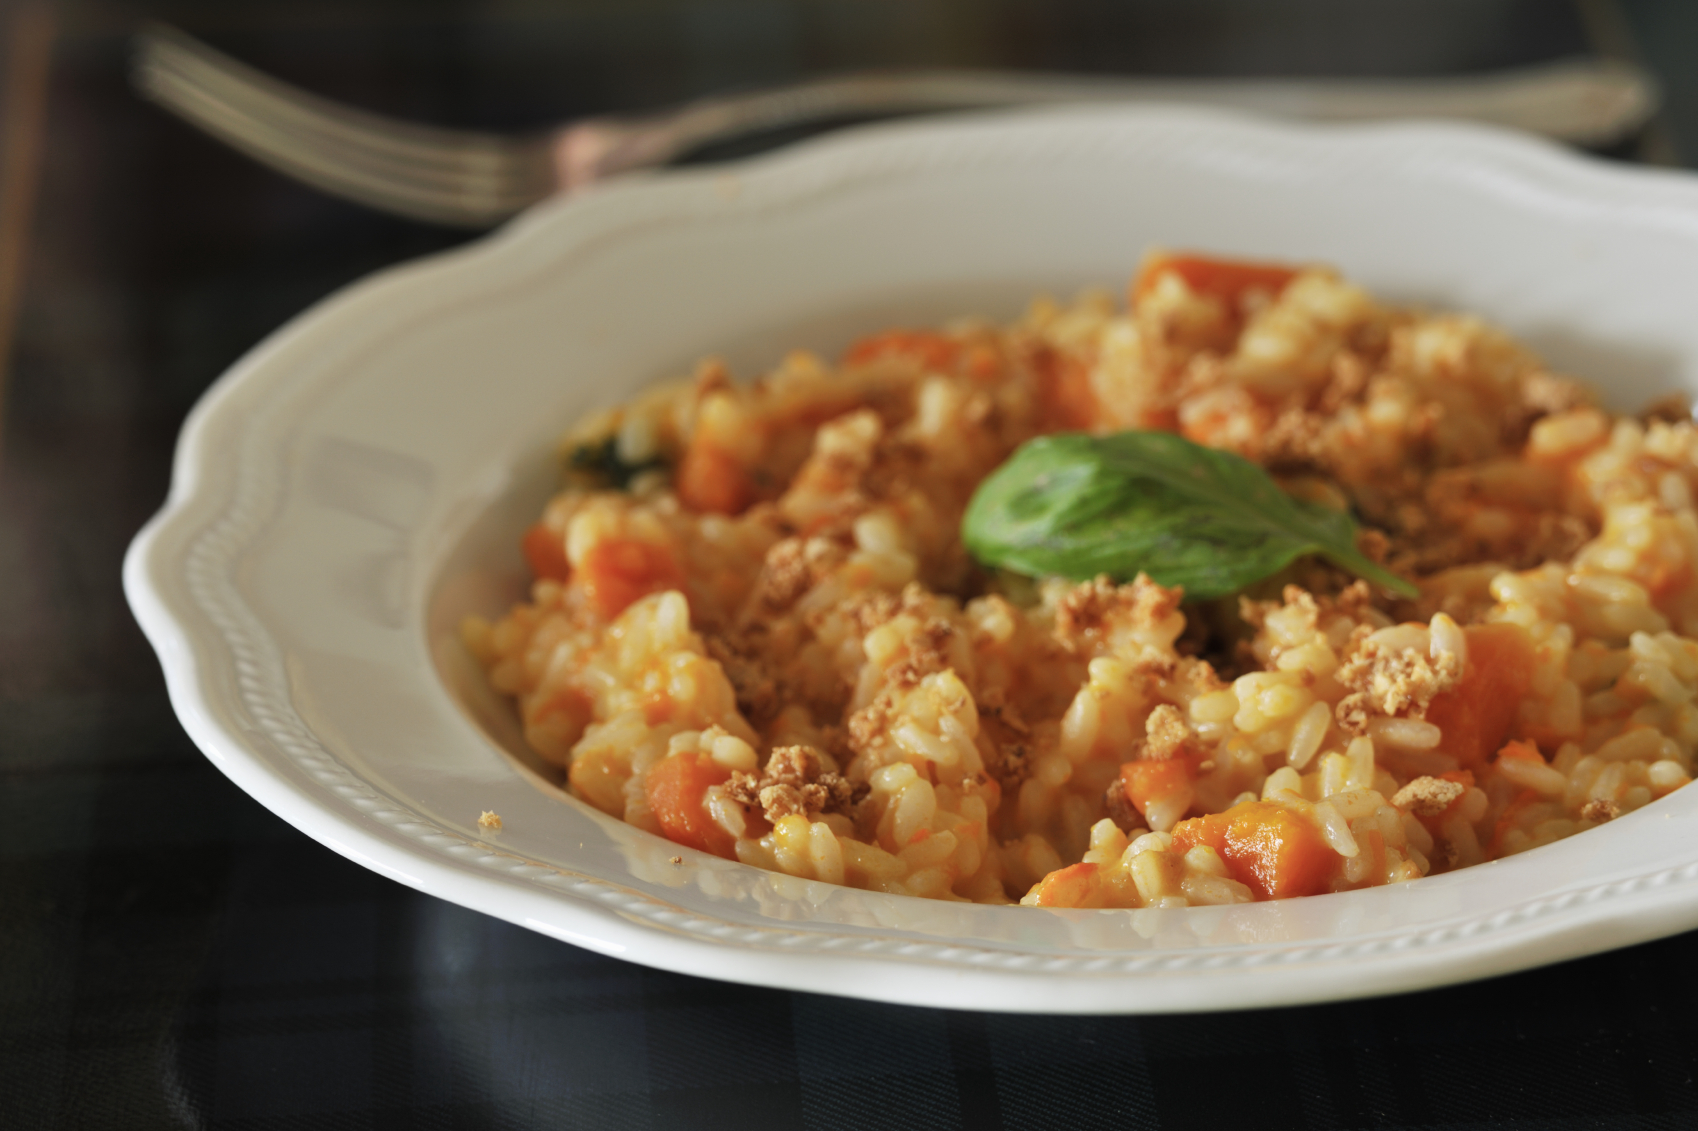 Bowl of Italian risotto